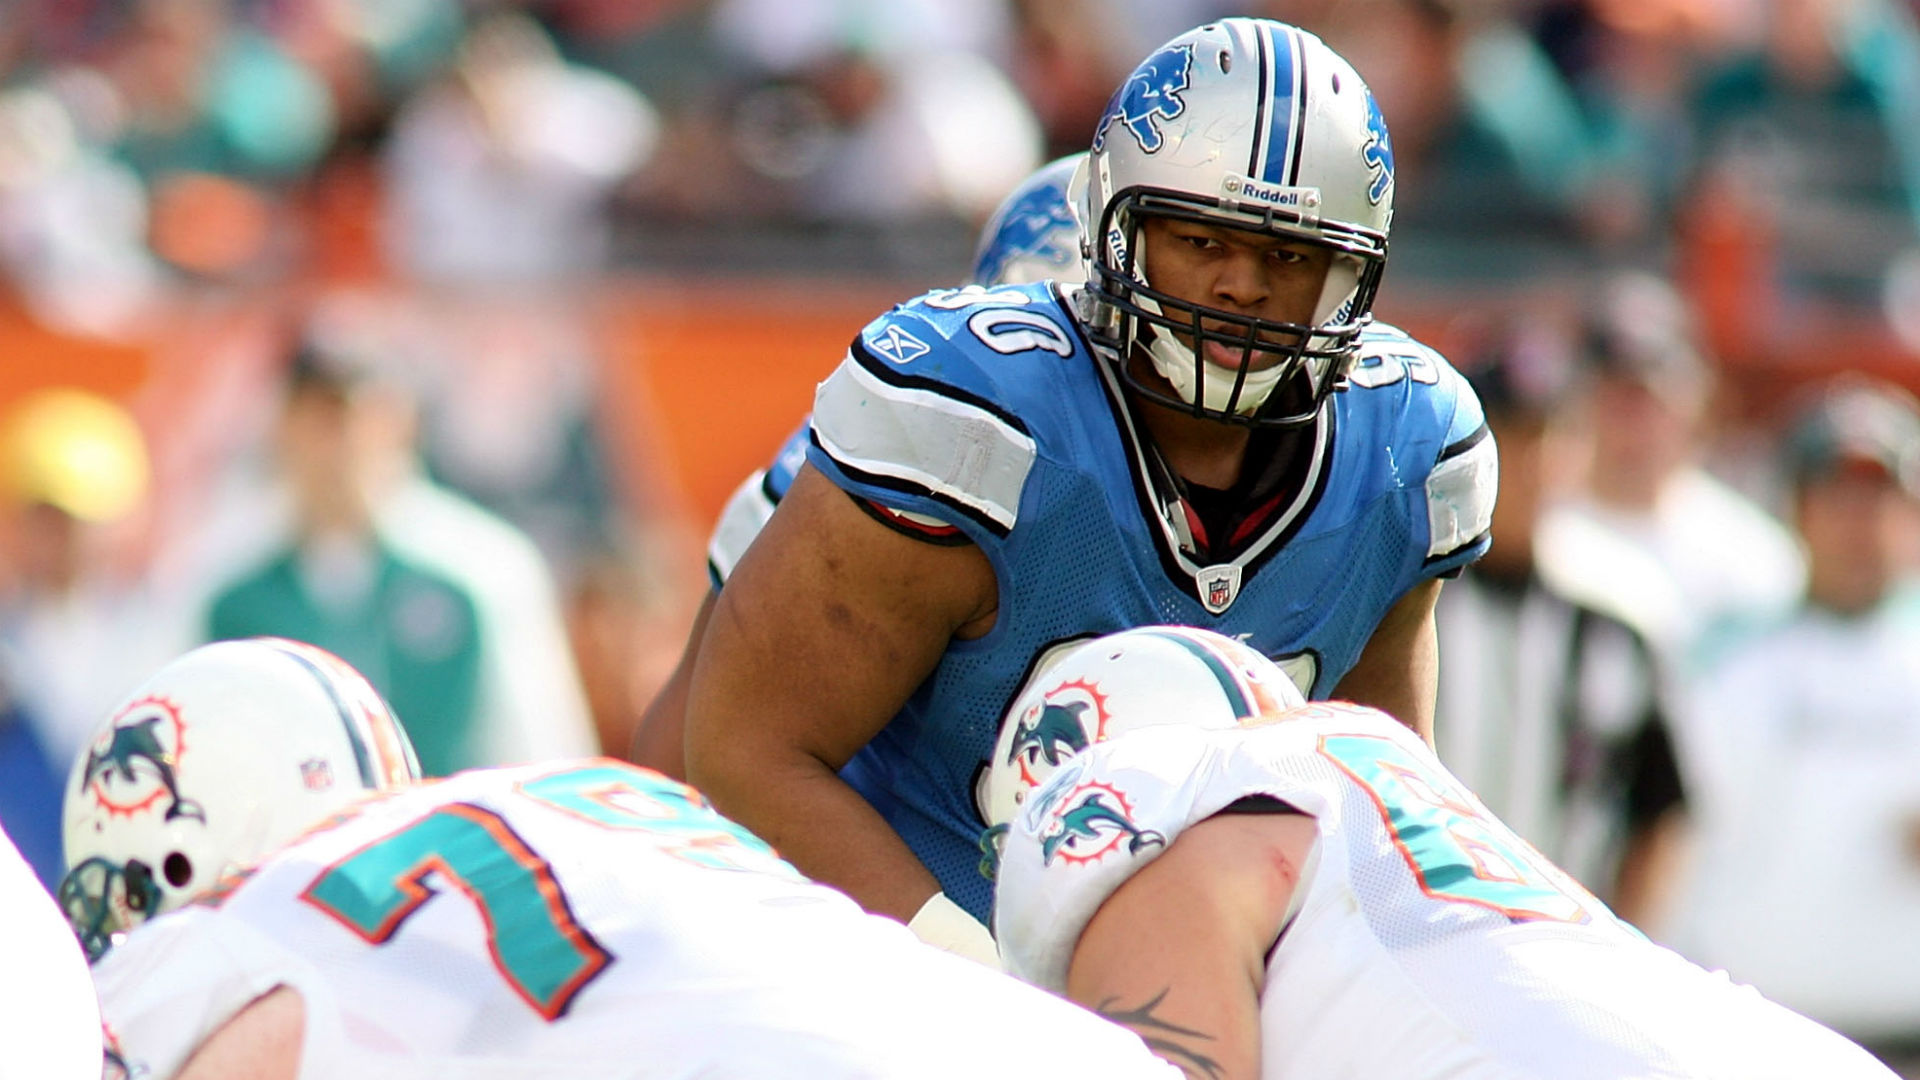 Defensive lineman Ndamukong Suh